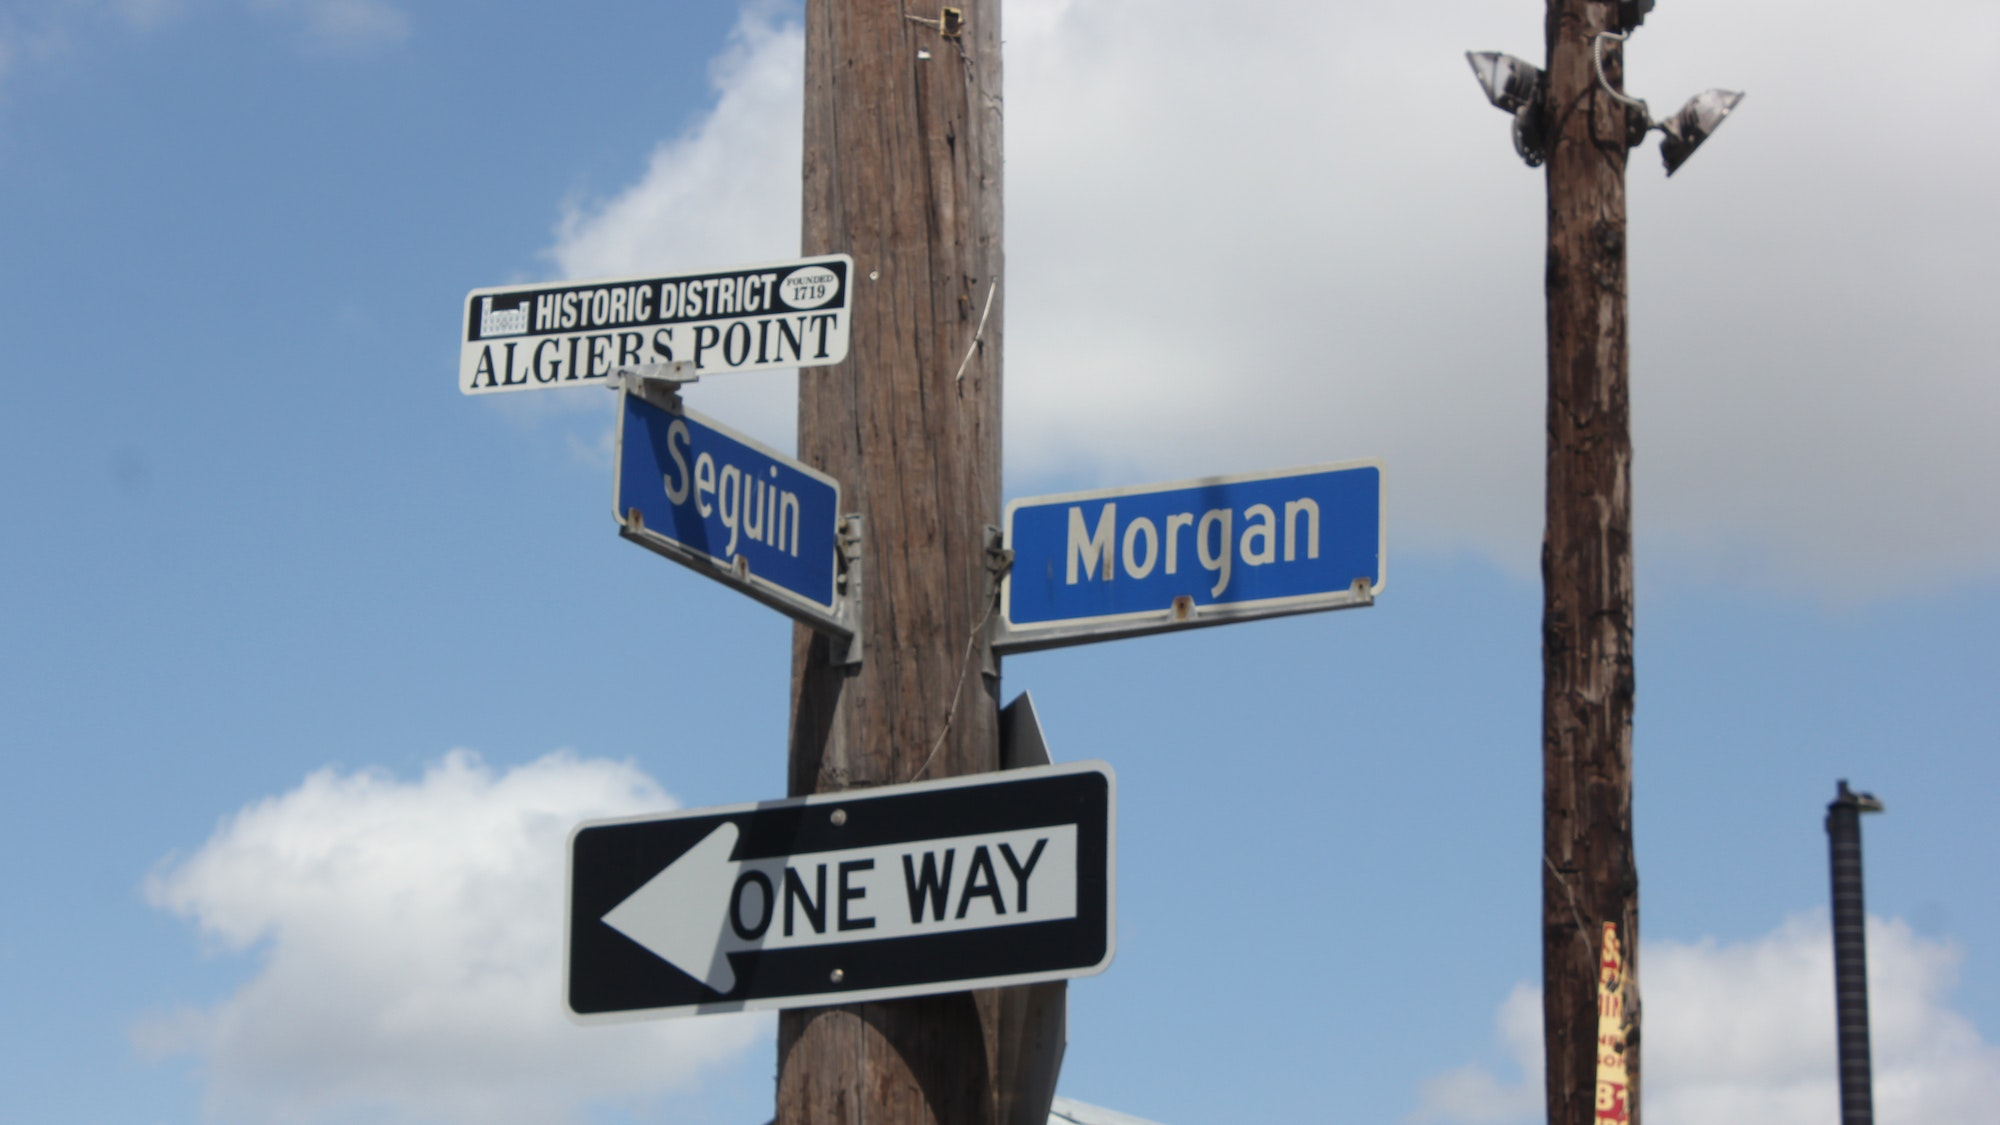 Algiers Point in New Orleans was founded in 1719.